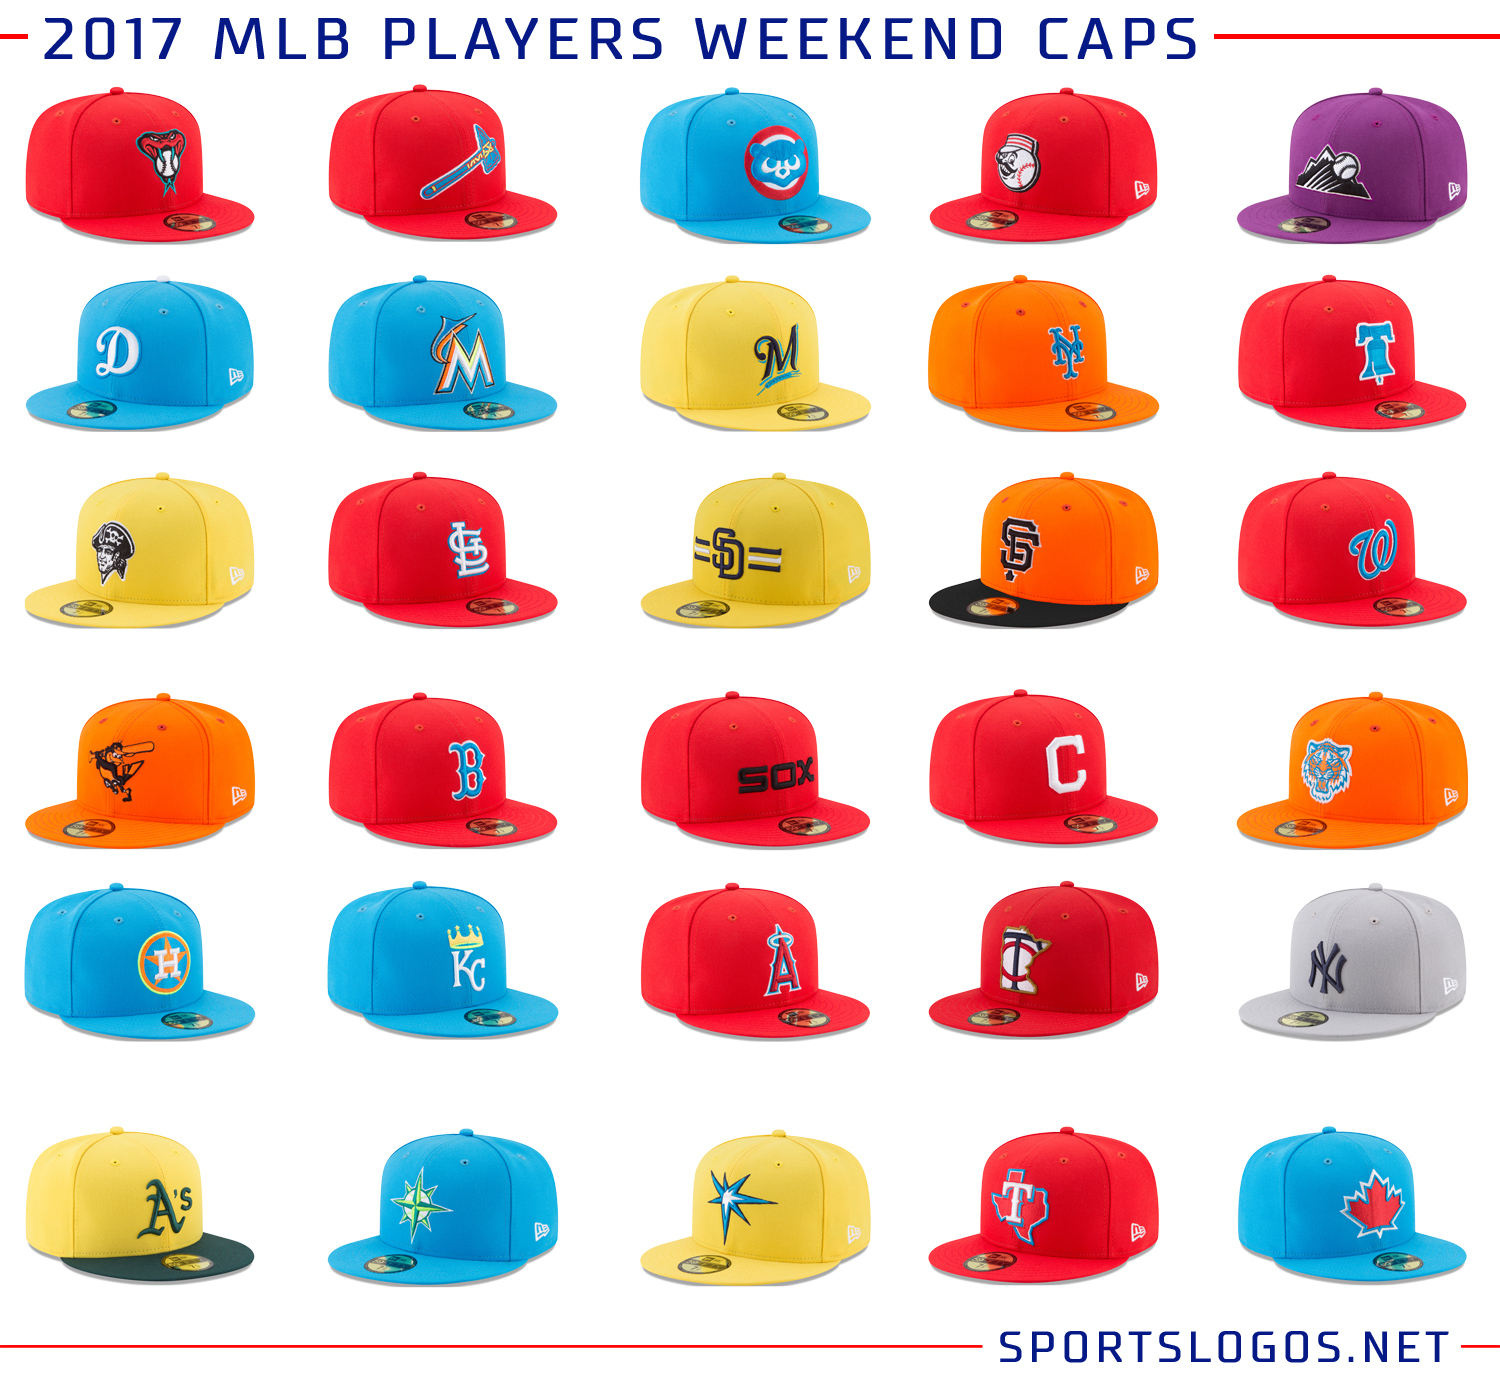 54b65374e7a Alternate logos are a common sight on the Players Weekend ballcaps